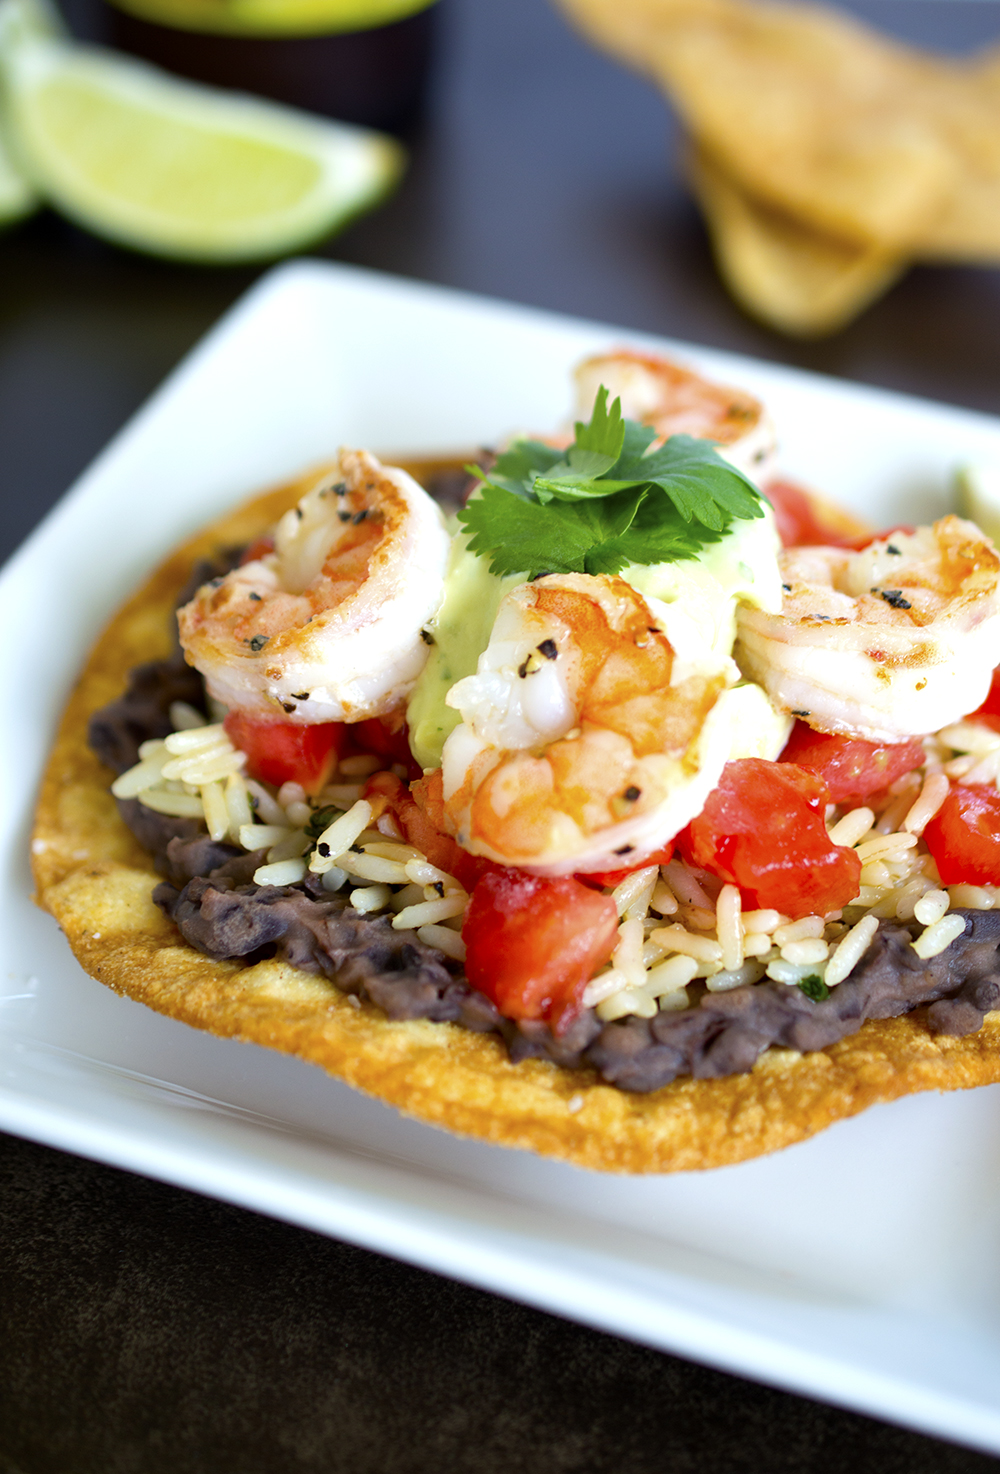 Shrimp Tostadas With Avocado Salsa Recipes — Dishmaps